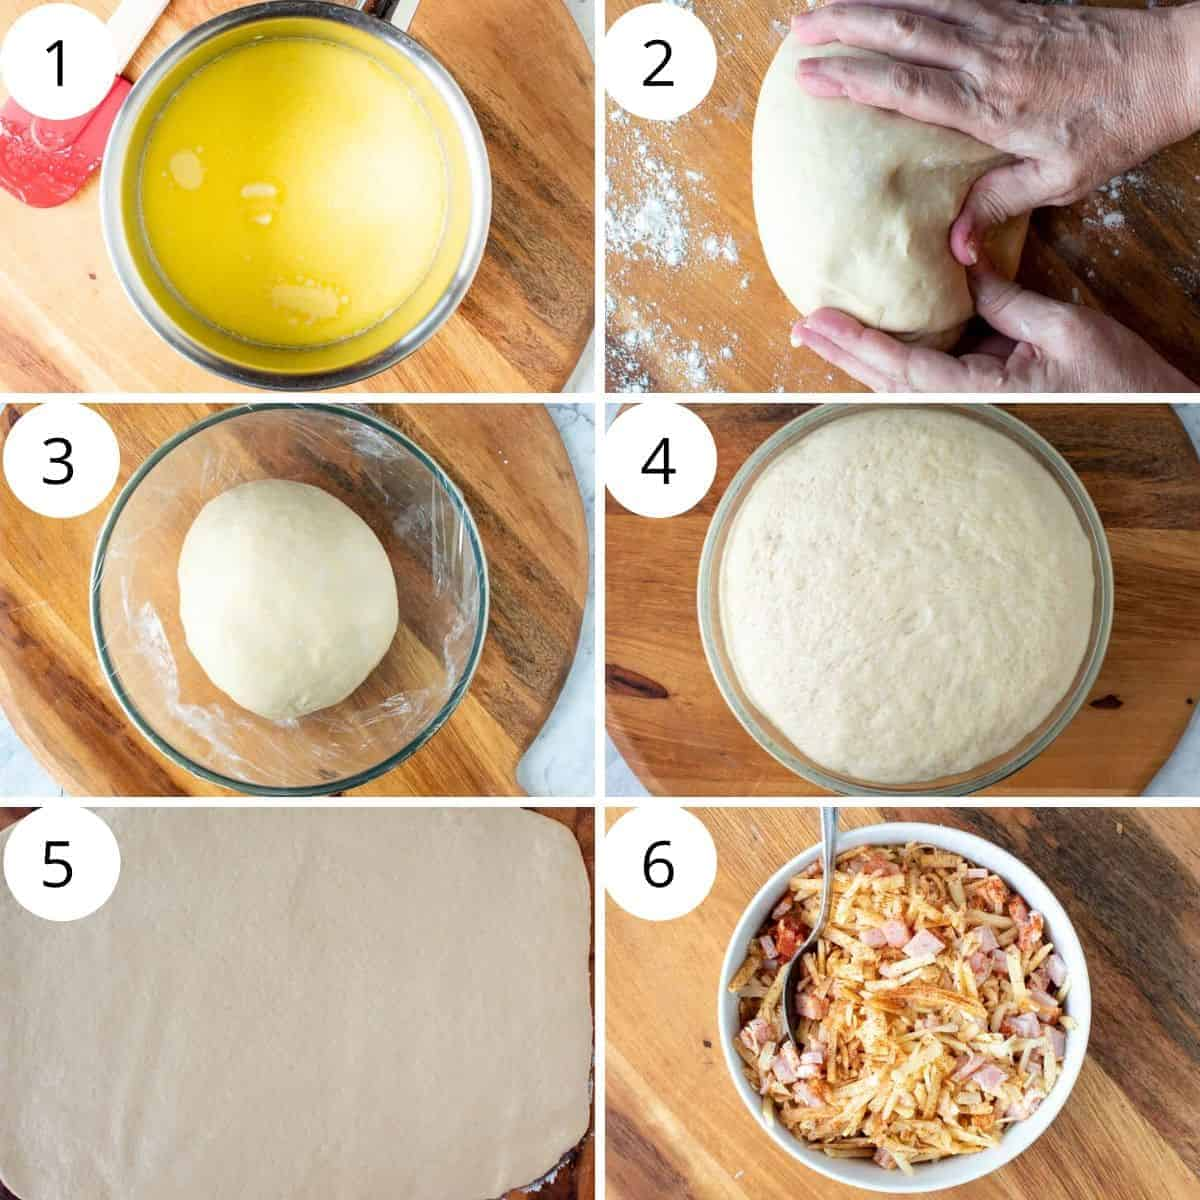 6 images numbered 1 to 6. Image 1 - melted butter and milk in saucepan. Image 2 - dough with hand kneading it. Image 3 - dough ball in glass bowl. Image 4 - risen dough ball in glass bowl. Image 5 - rolled out dough on wooden board. Image 6 - white bowl filled with cheese, bacon and smoked paprika